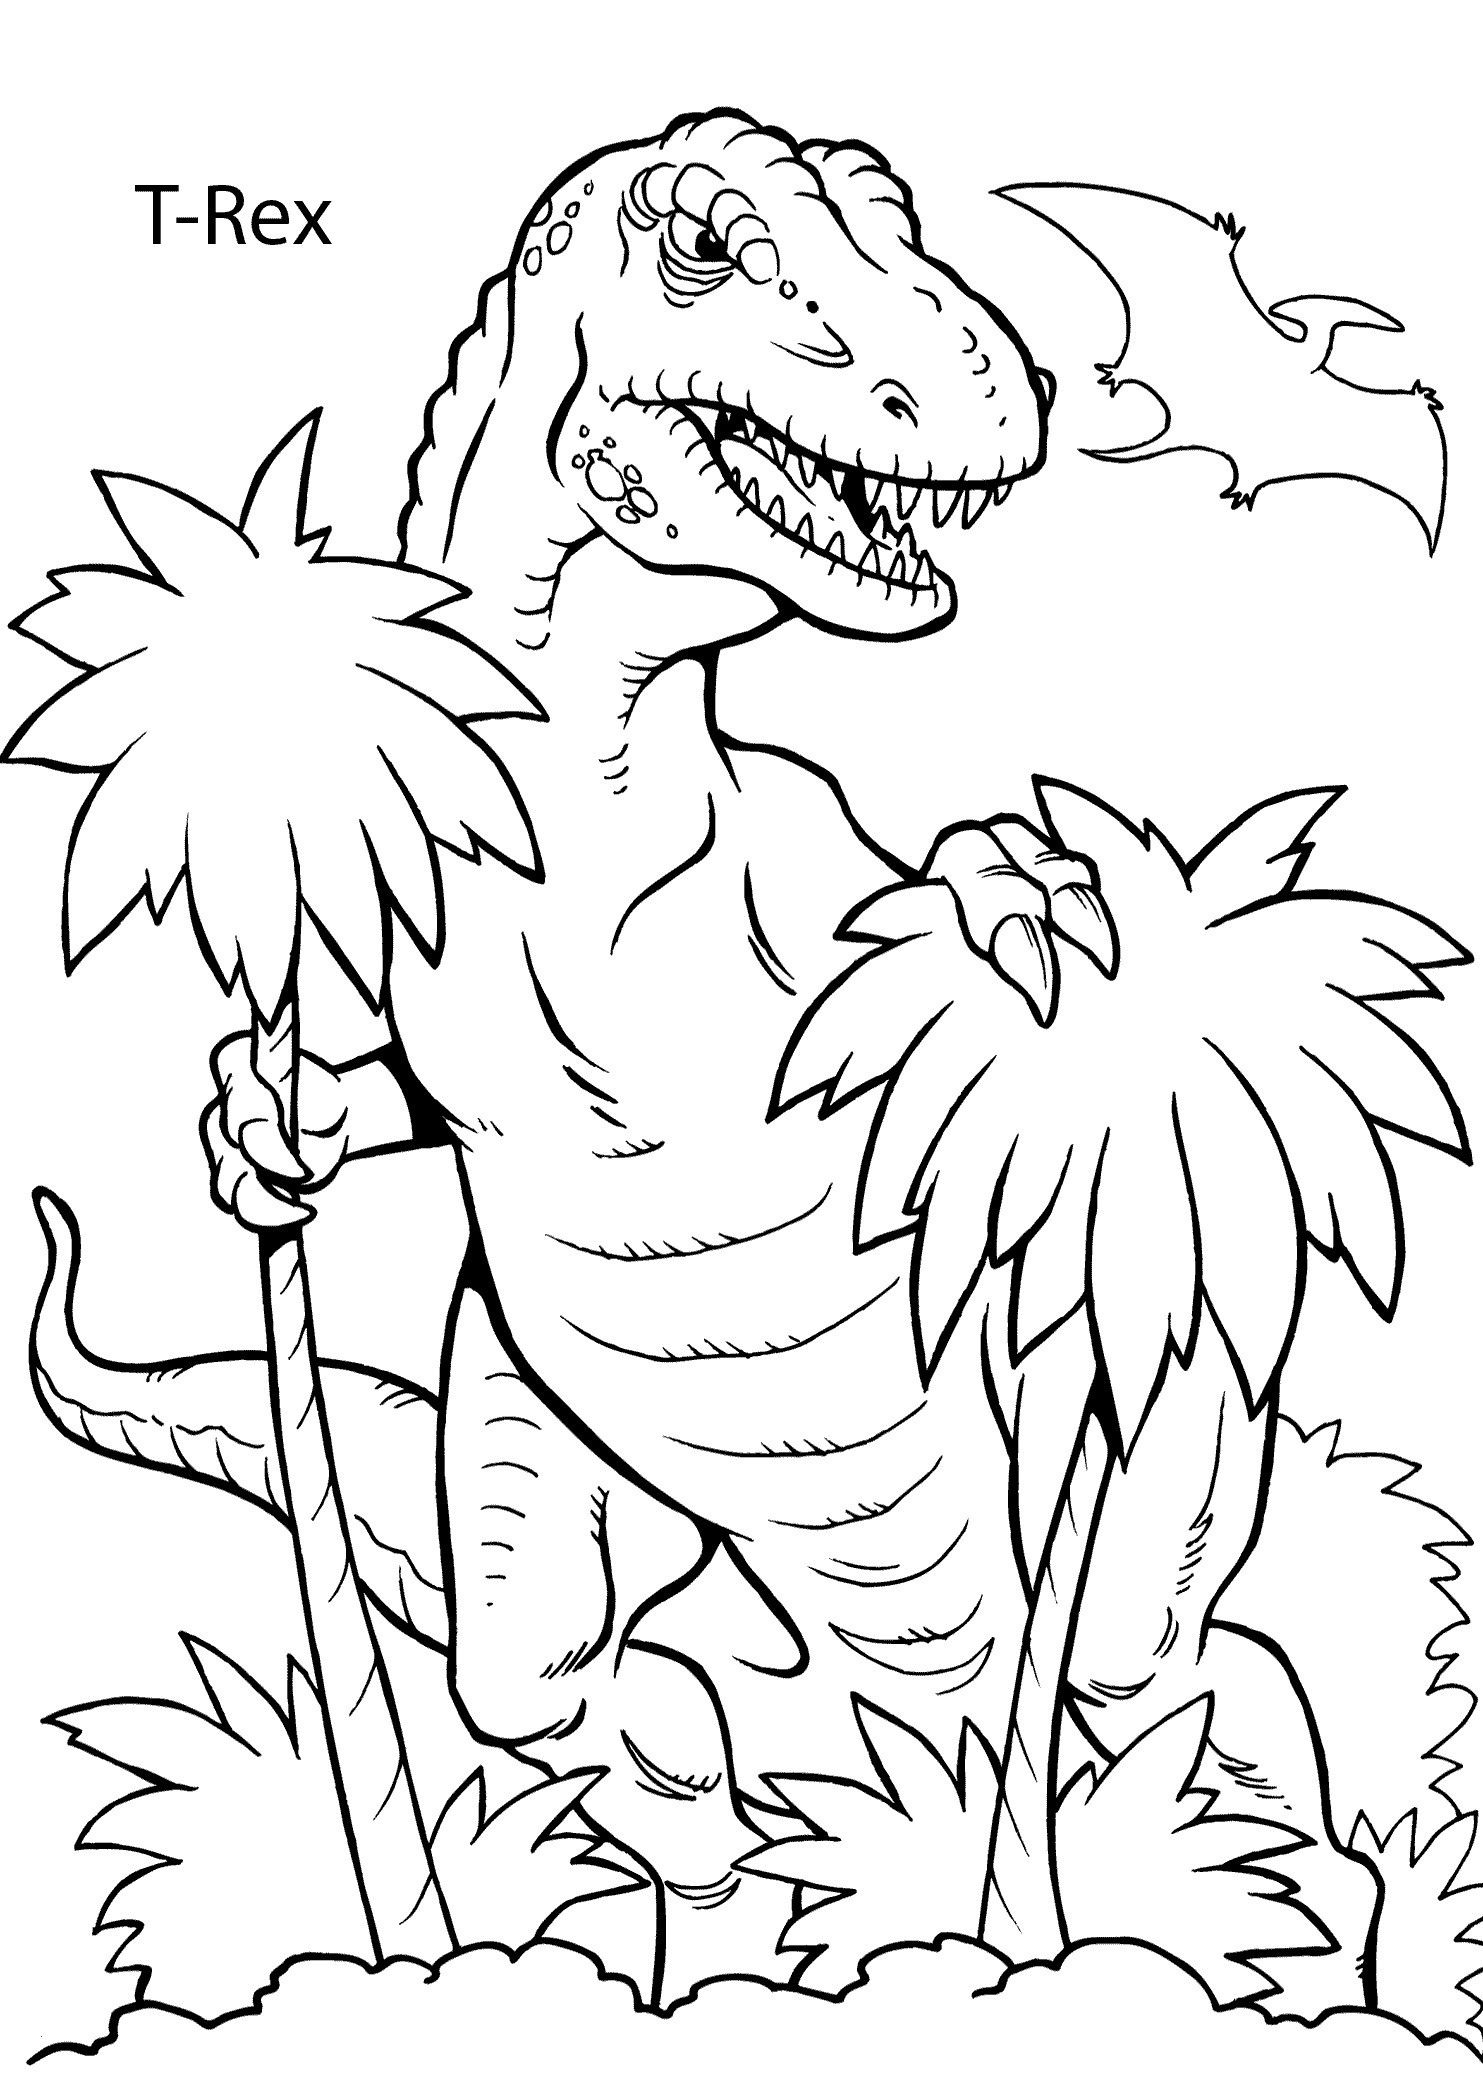 Dino Dan #dinosaurs #coloring #pages